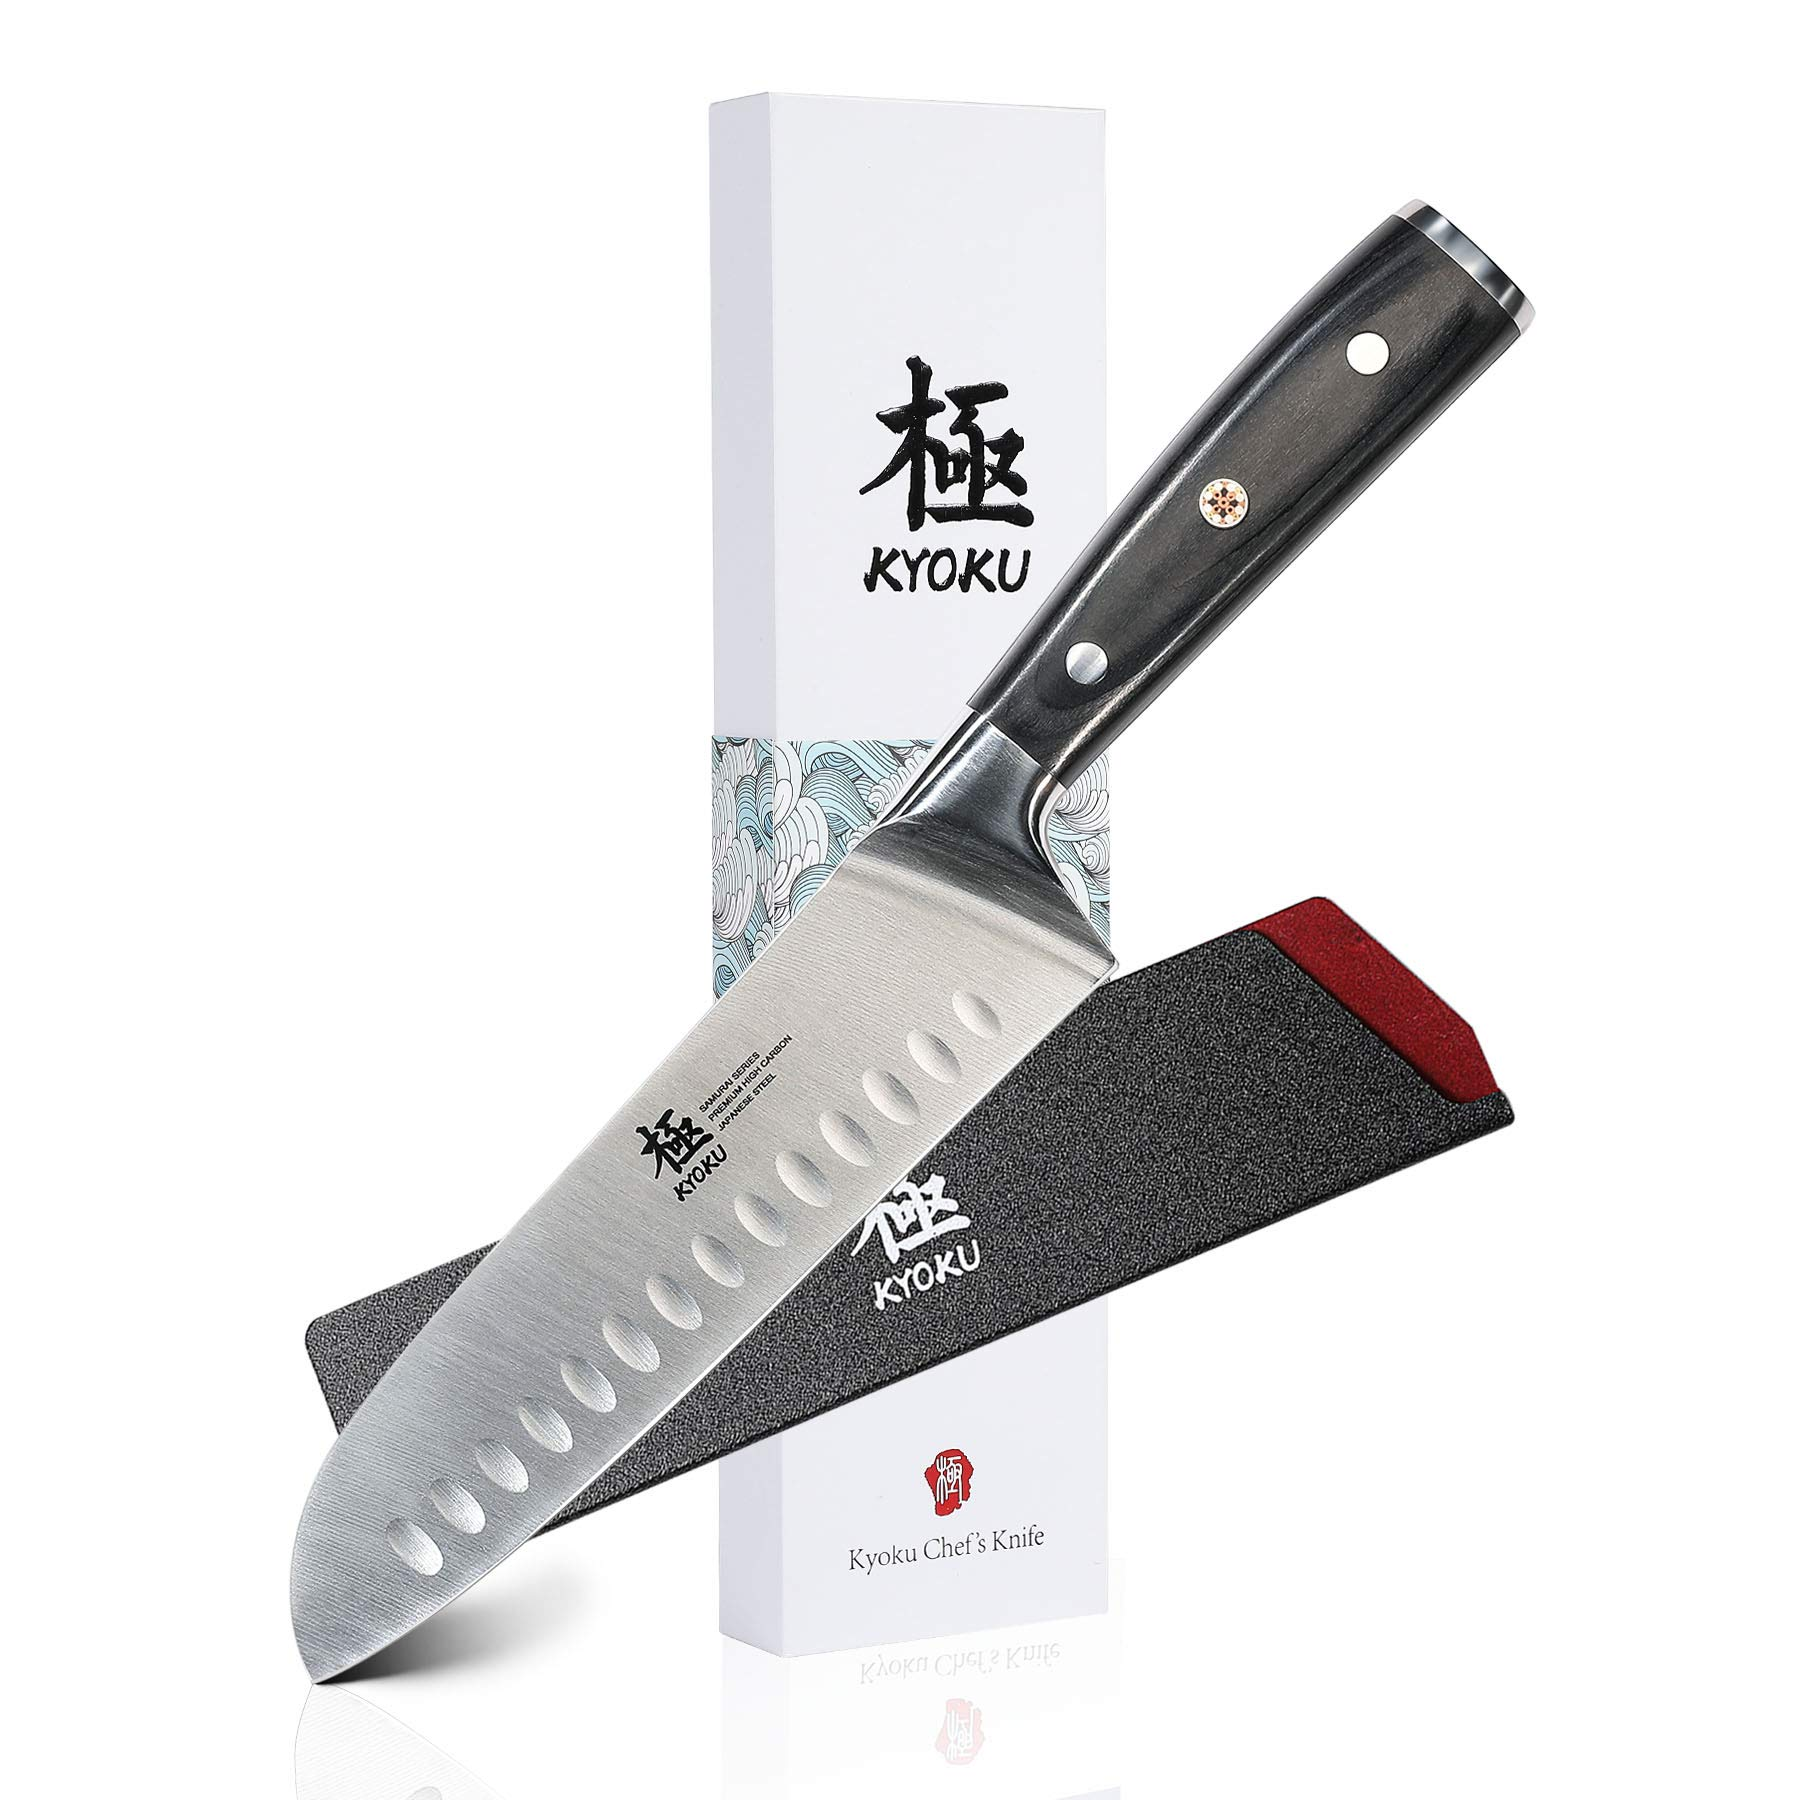 KYOKU Samurai Series - Santoku Chef Knife 7'' with Sheath & Case - Full Tang - Japanese High Carbon Steel - Pakkawood Handle with Mosaic Pin by KYOKU (Image #1)